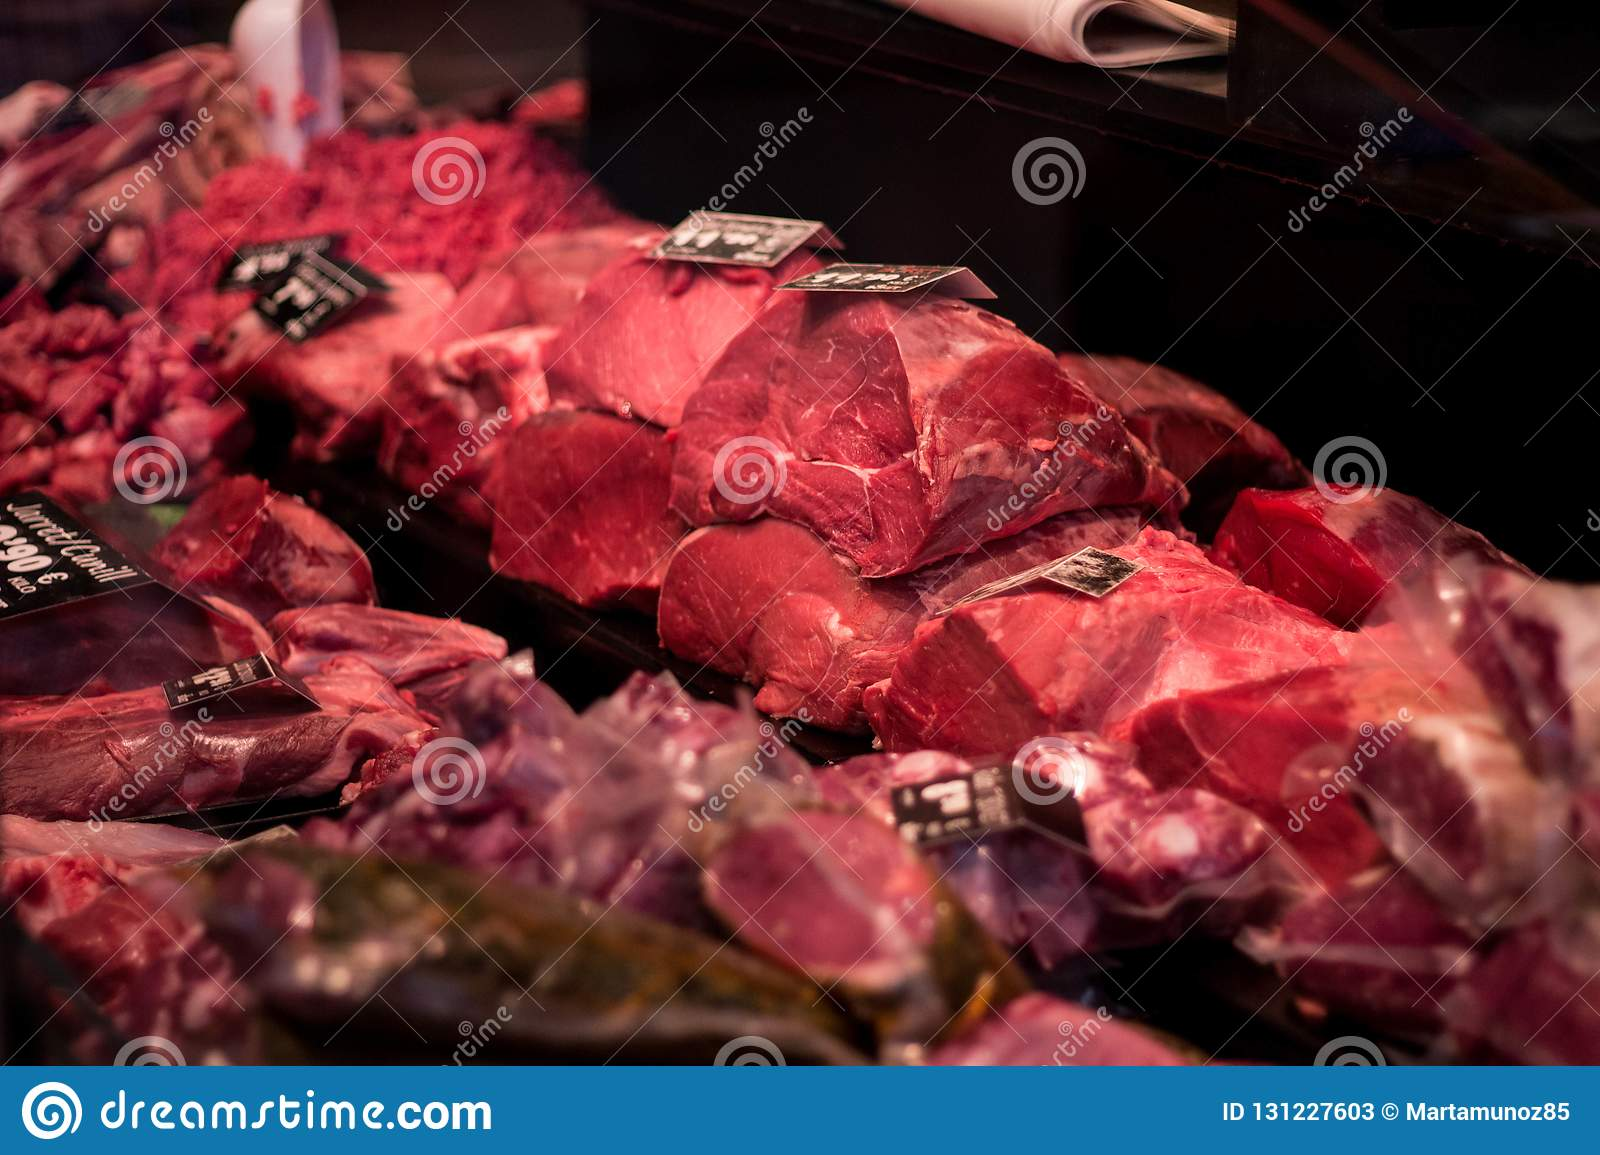 Butchery with read meat on sale